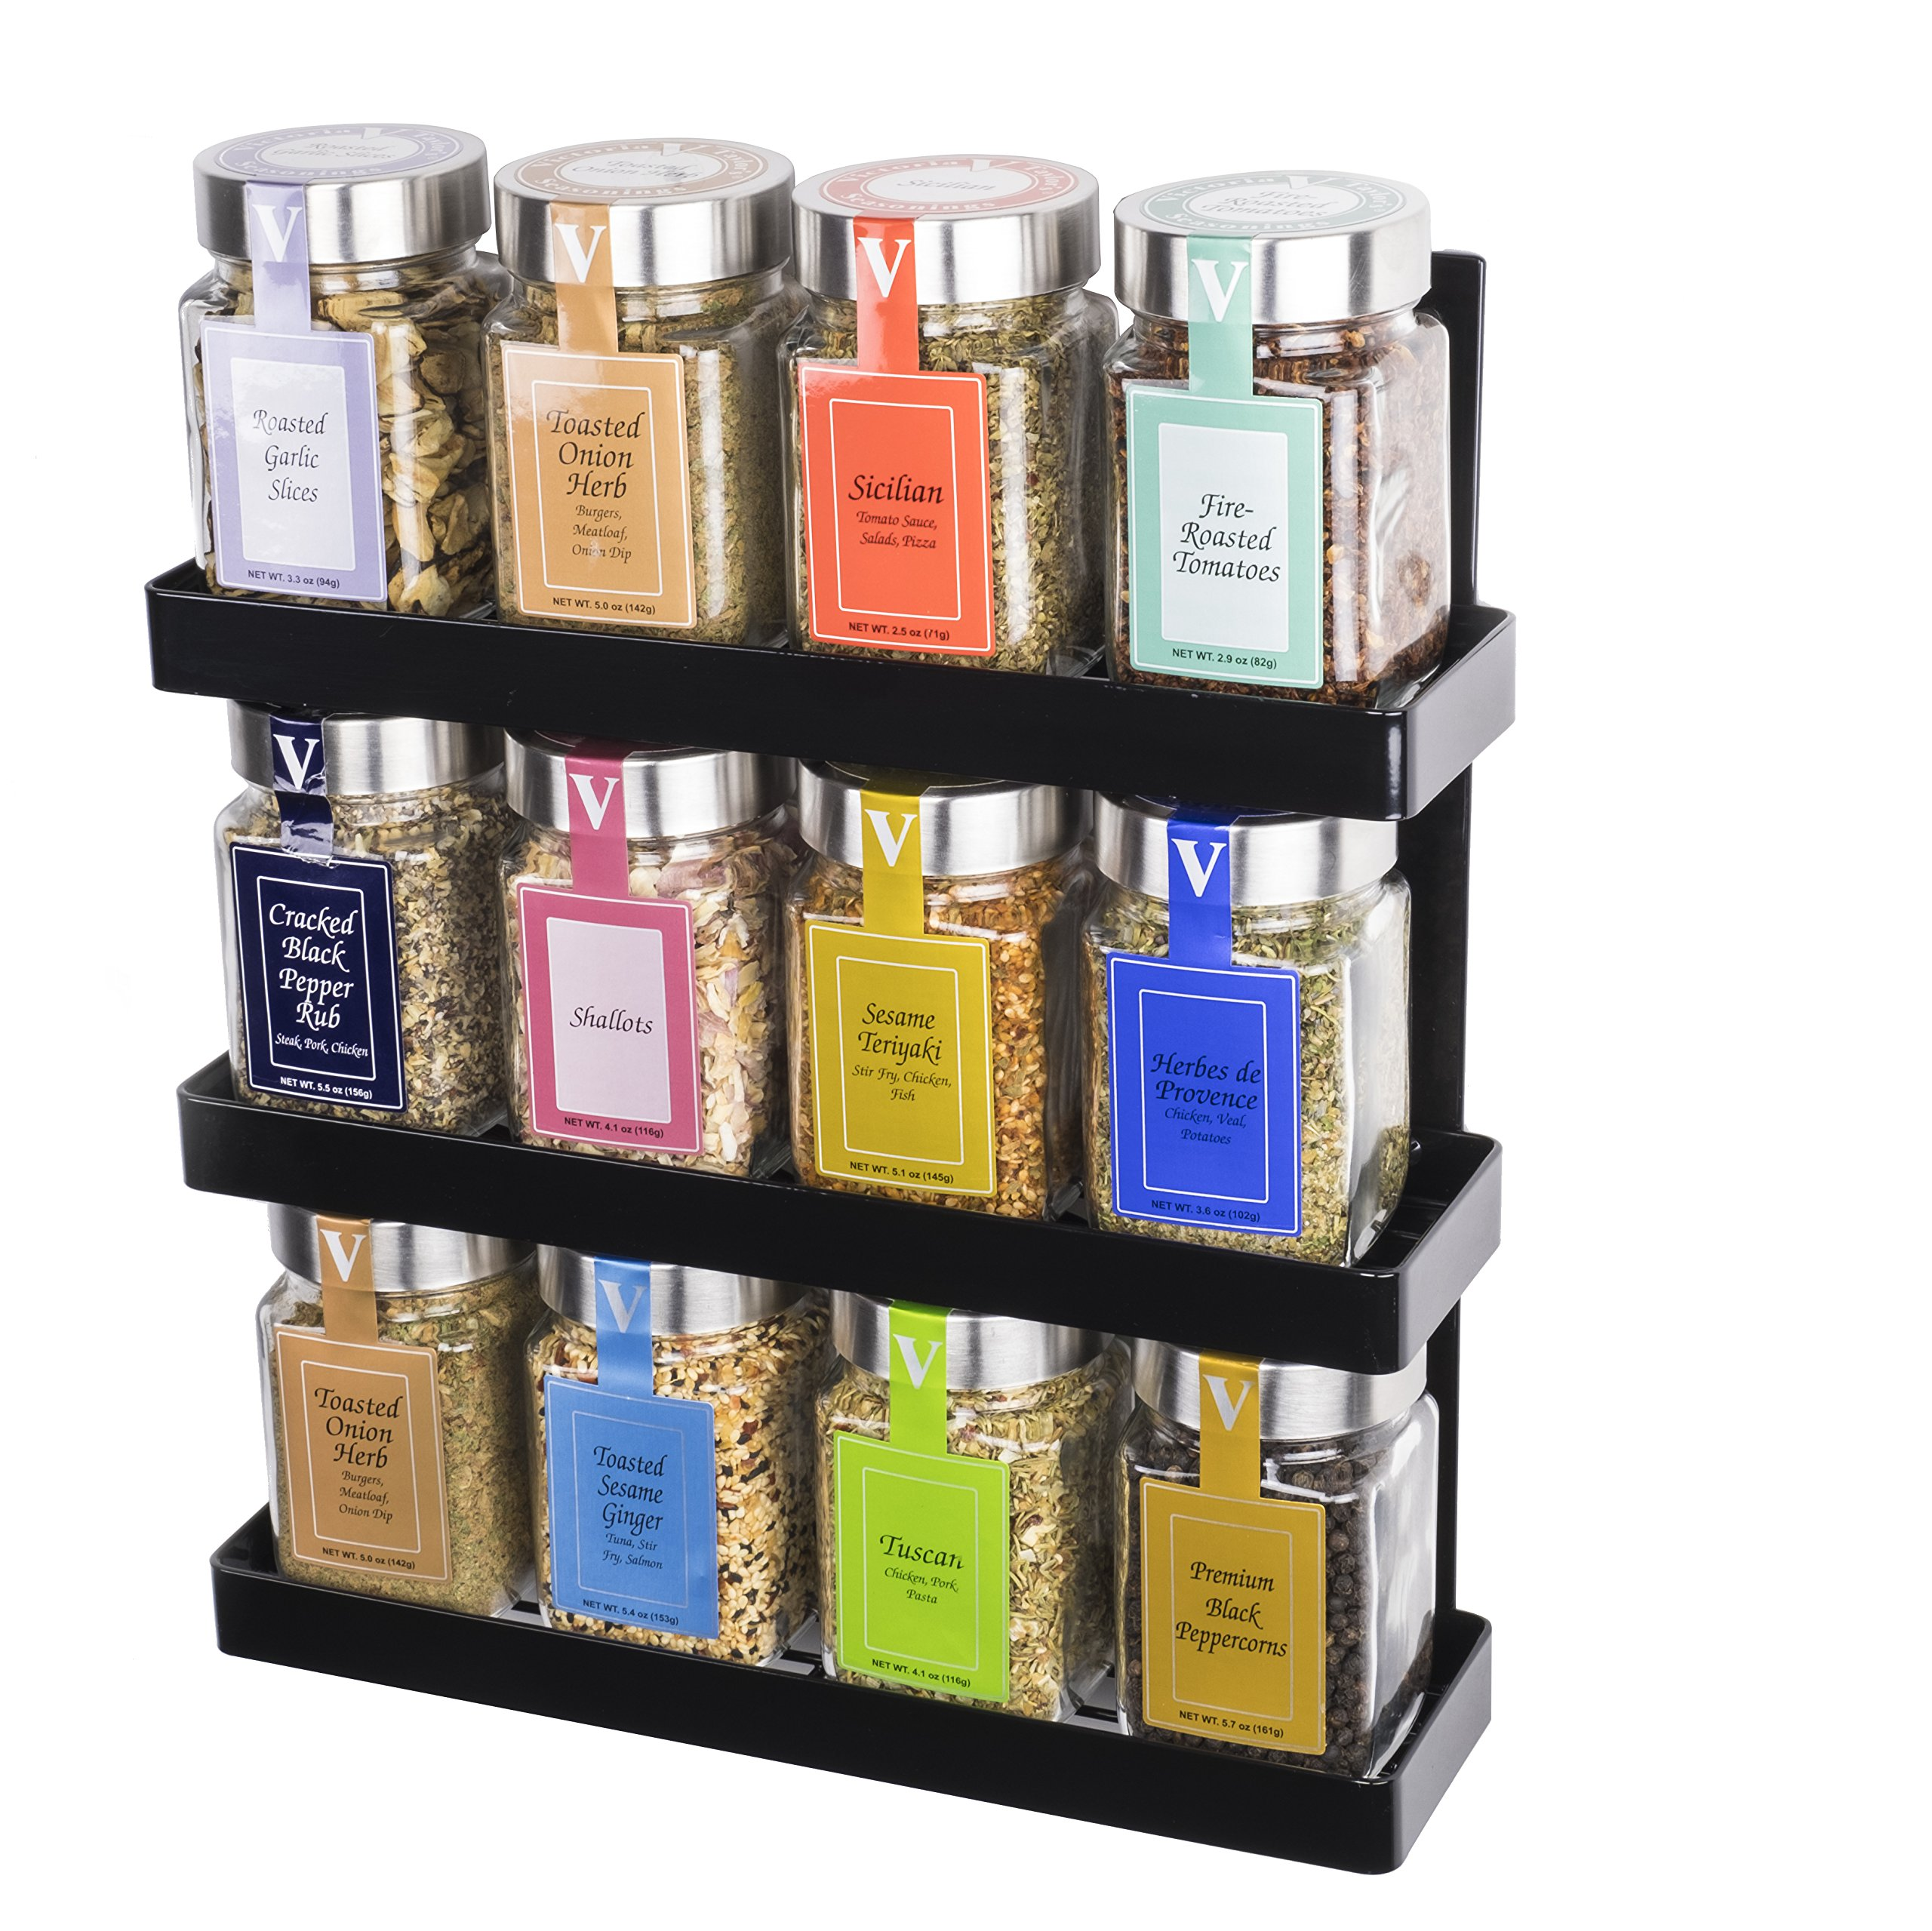 Space Saving Wall Mountable Sturdy Construction 3-Tier Spice Rack Pantry Organizer in Black